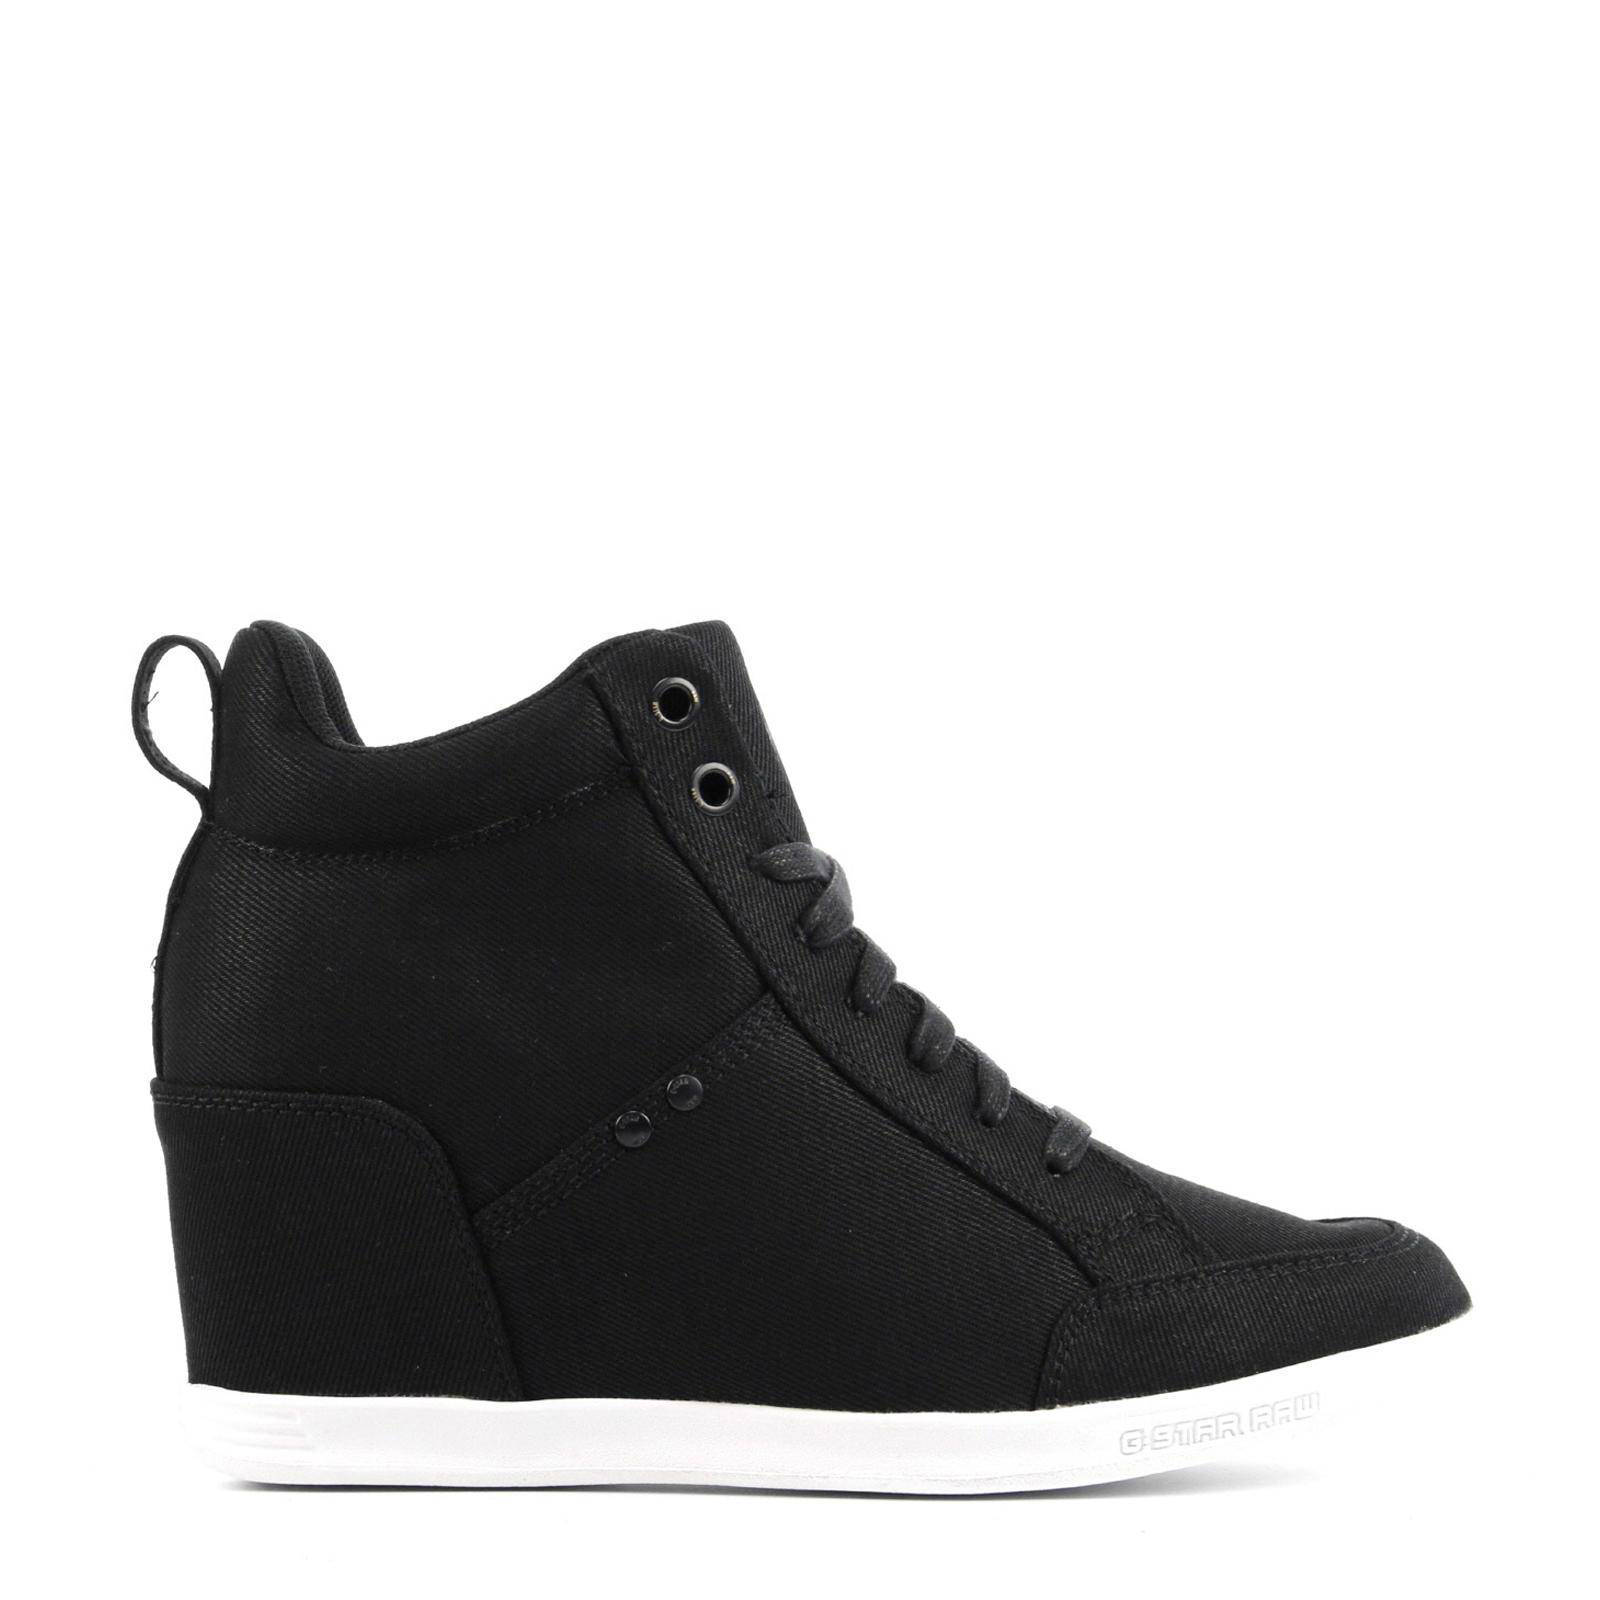 a81217a12c19 Labour wedge sneakers